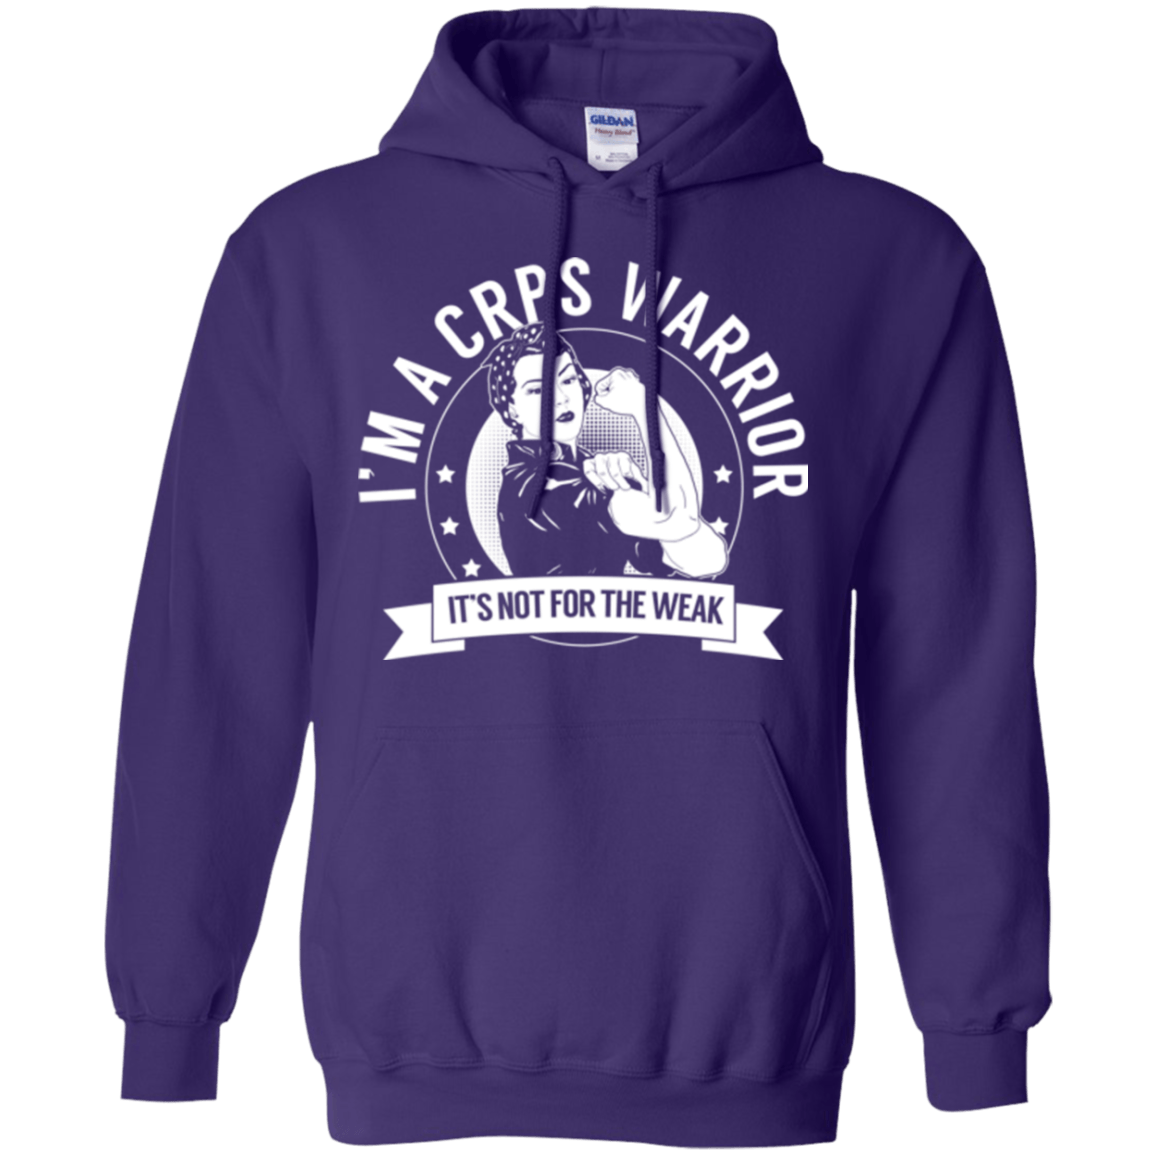 Complex Regional Pain Syndrome - CRPS Warrior Not For The Weak Pullover Hoodie 8 oz. - The Unchargeables